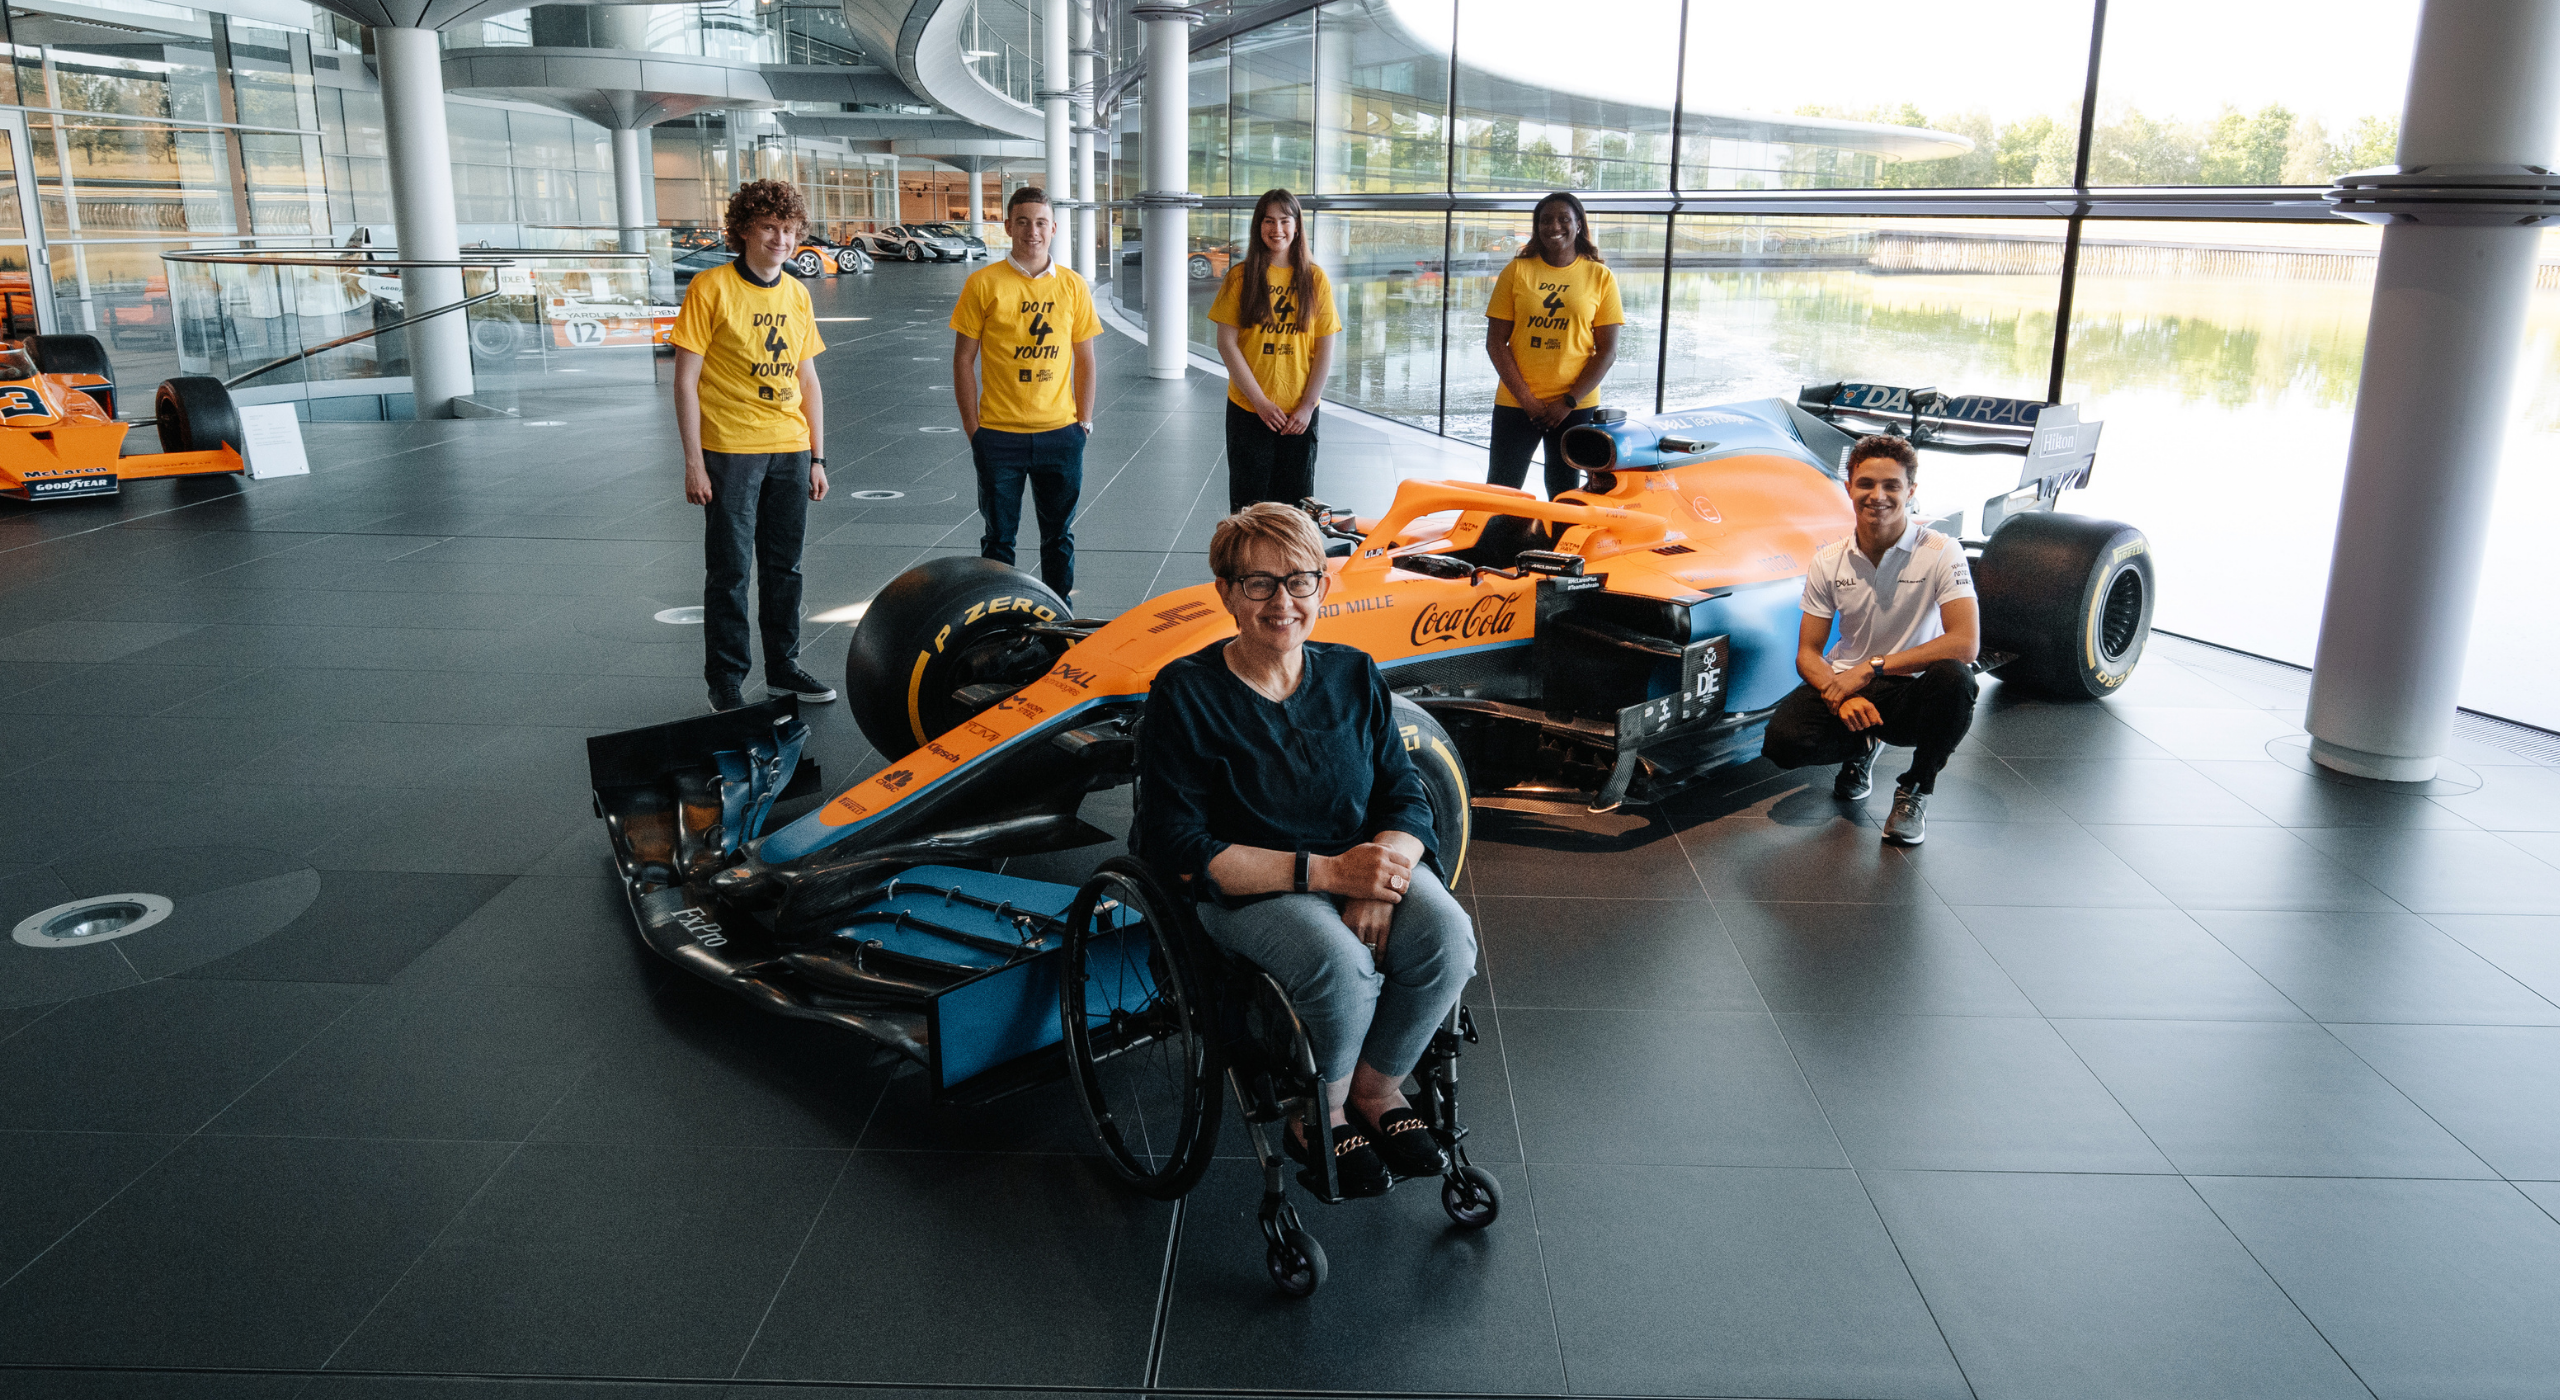 Group of Do It 4 youth participants with lando norris with a McClaren racing car